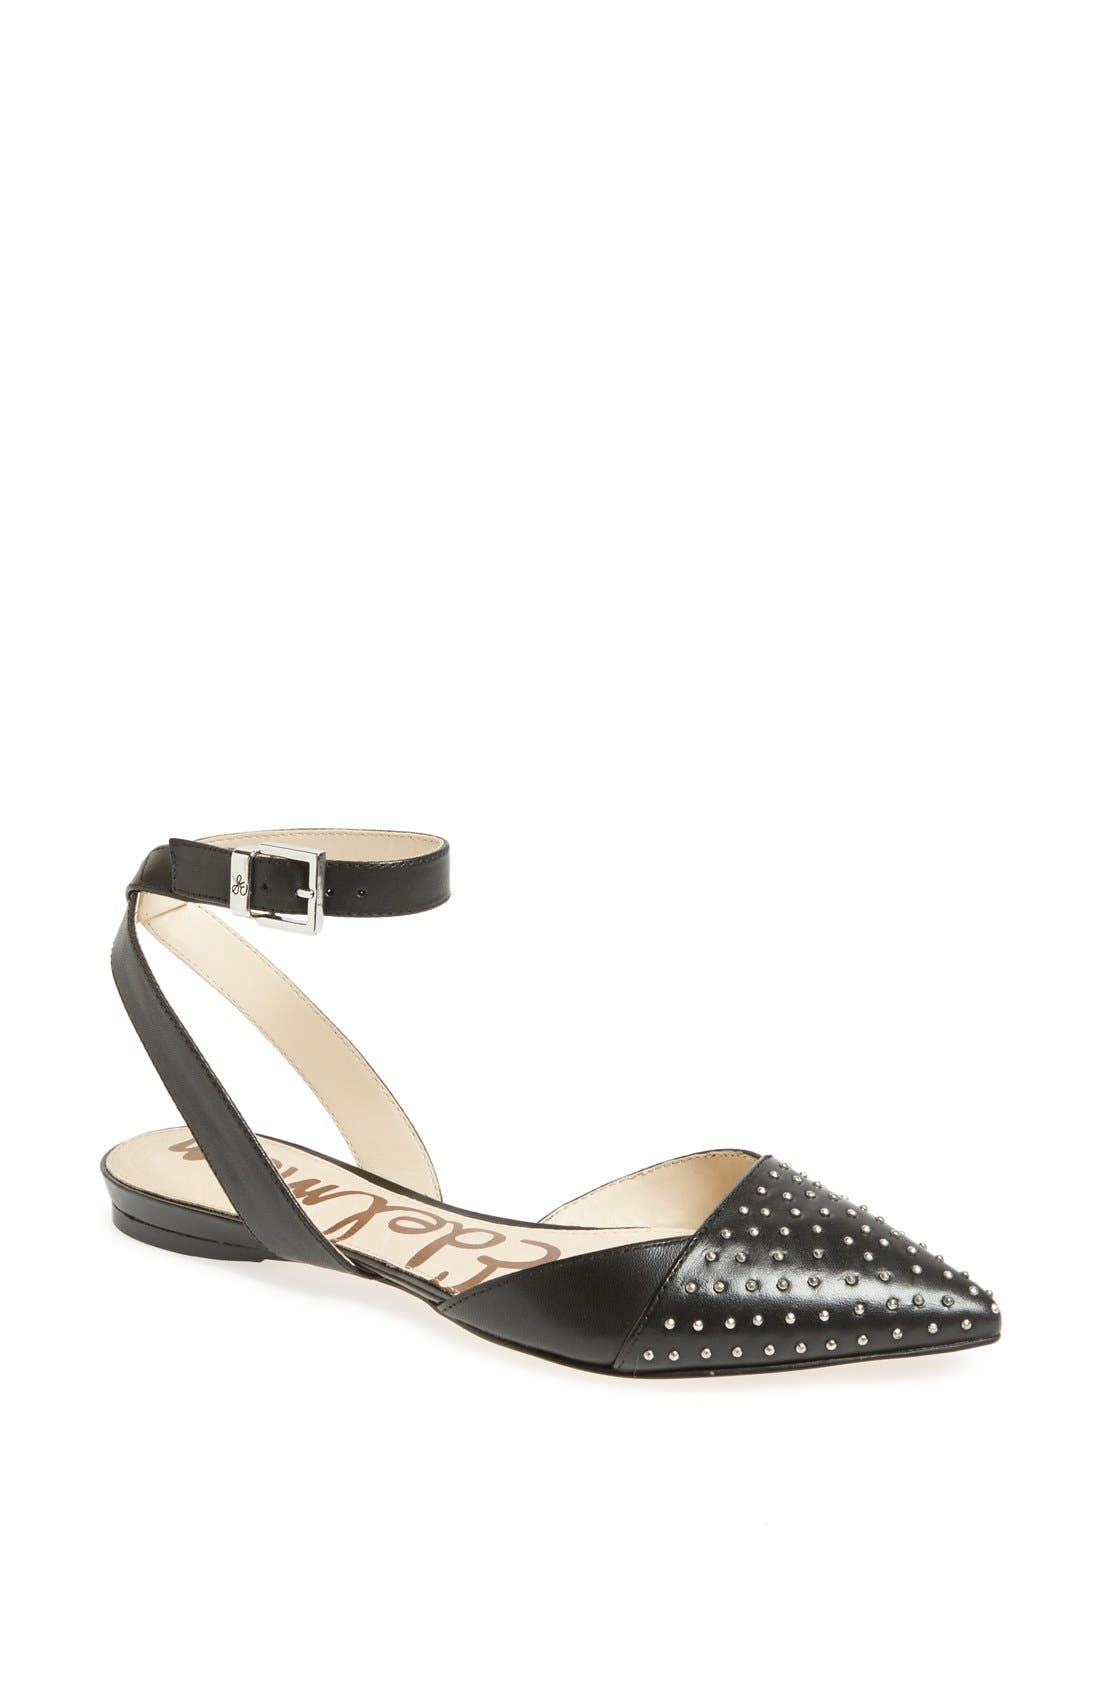 Alternate Image 1 Selected - Sam Edelman 'Brina' Flat